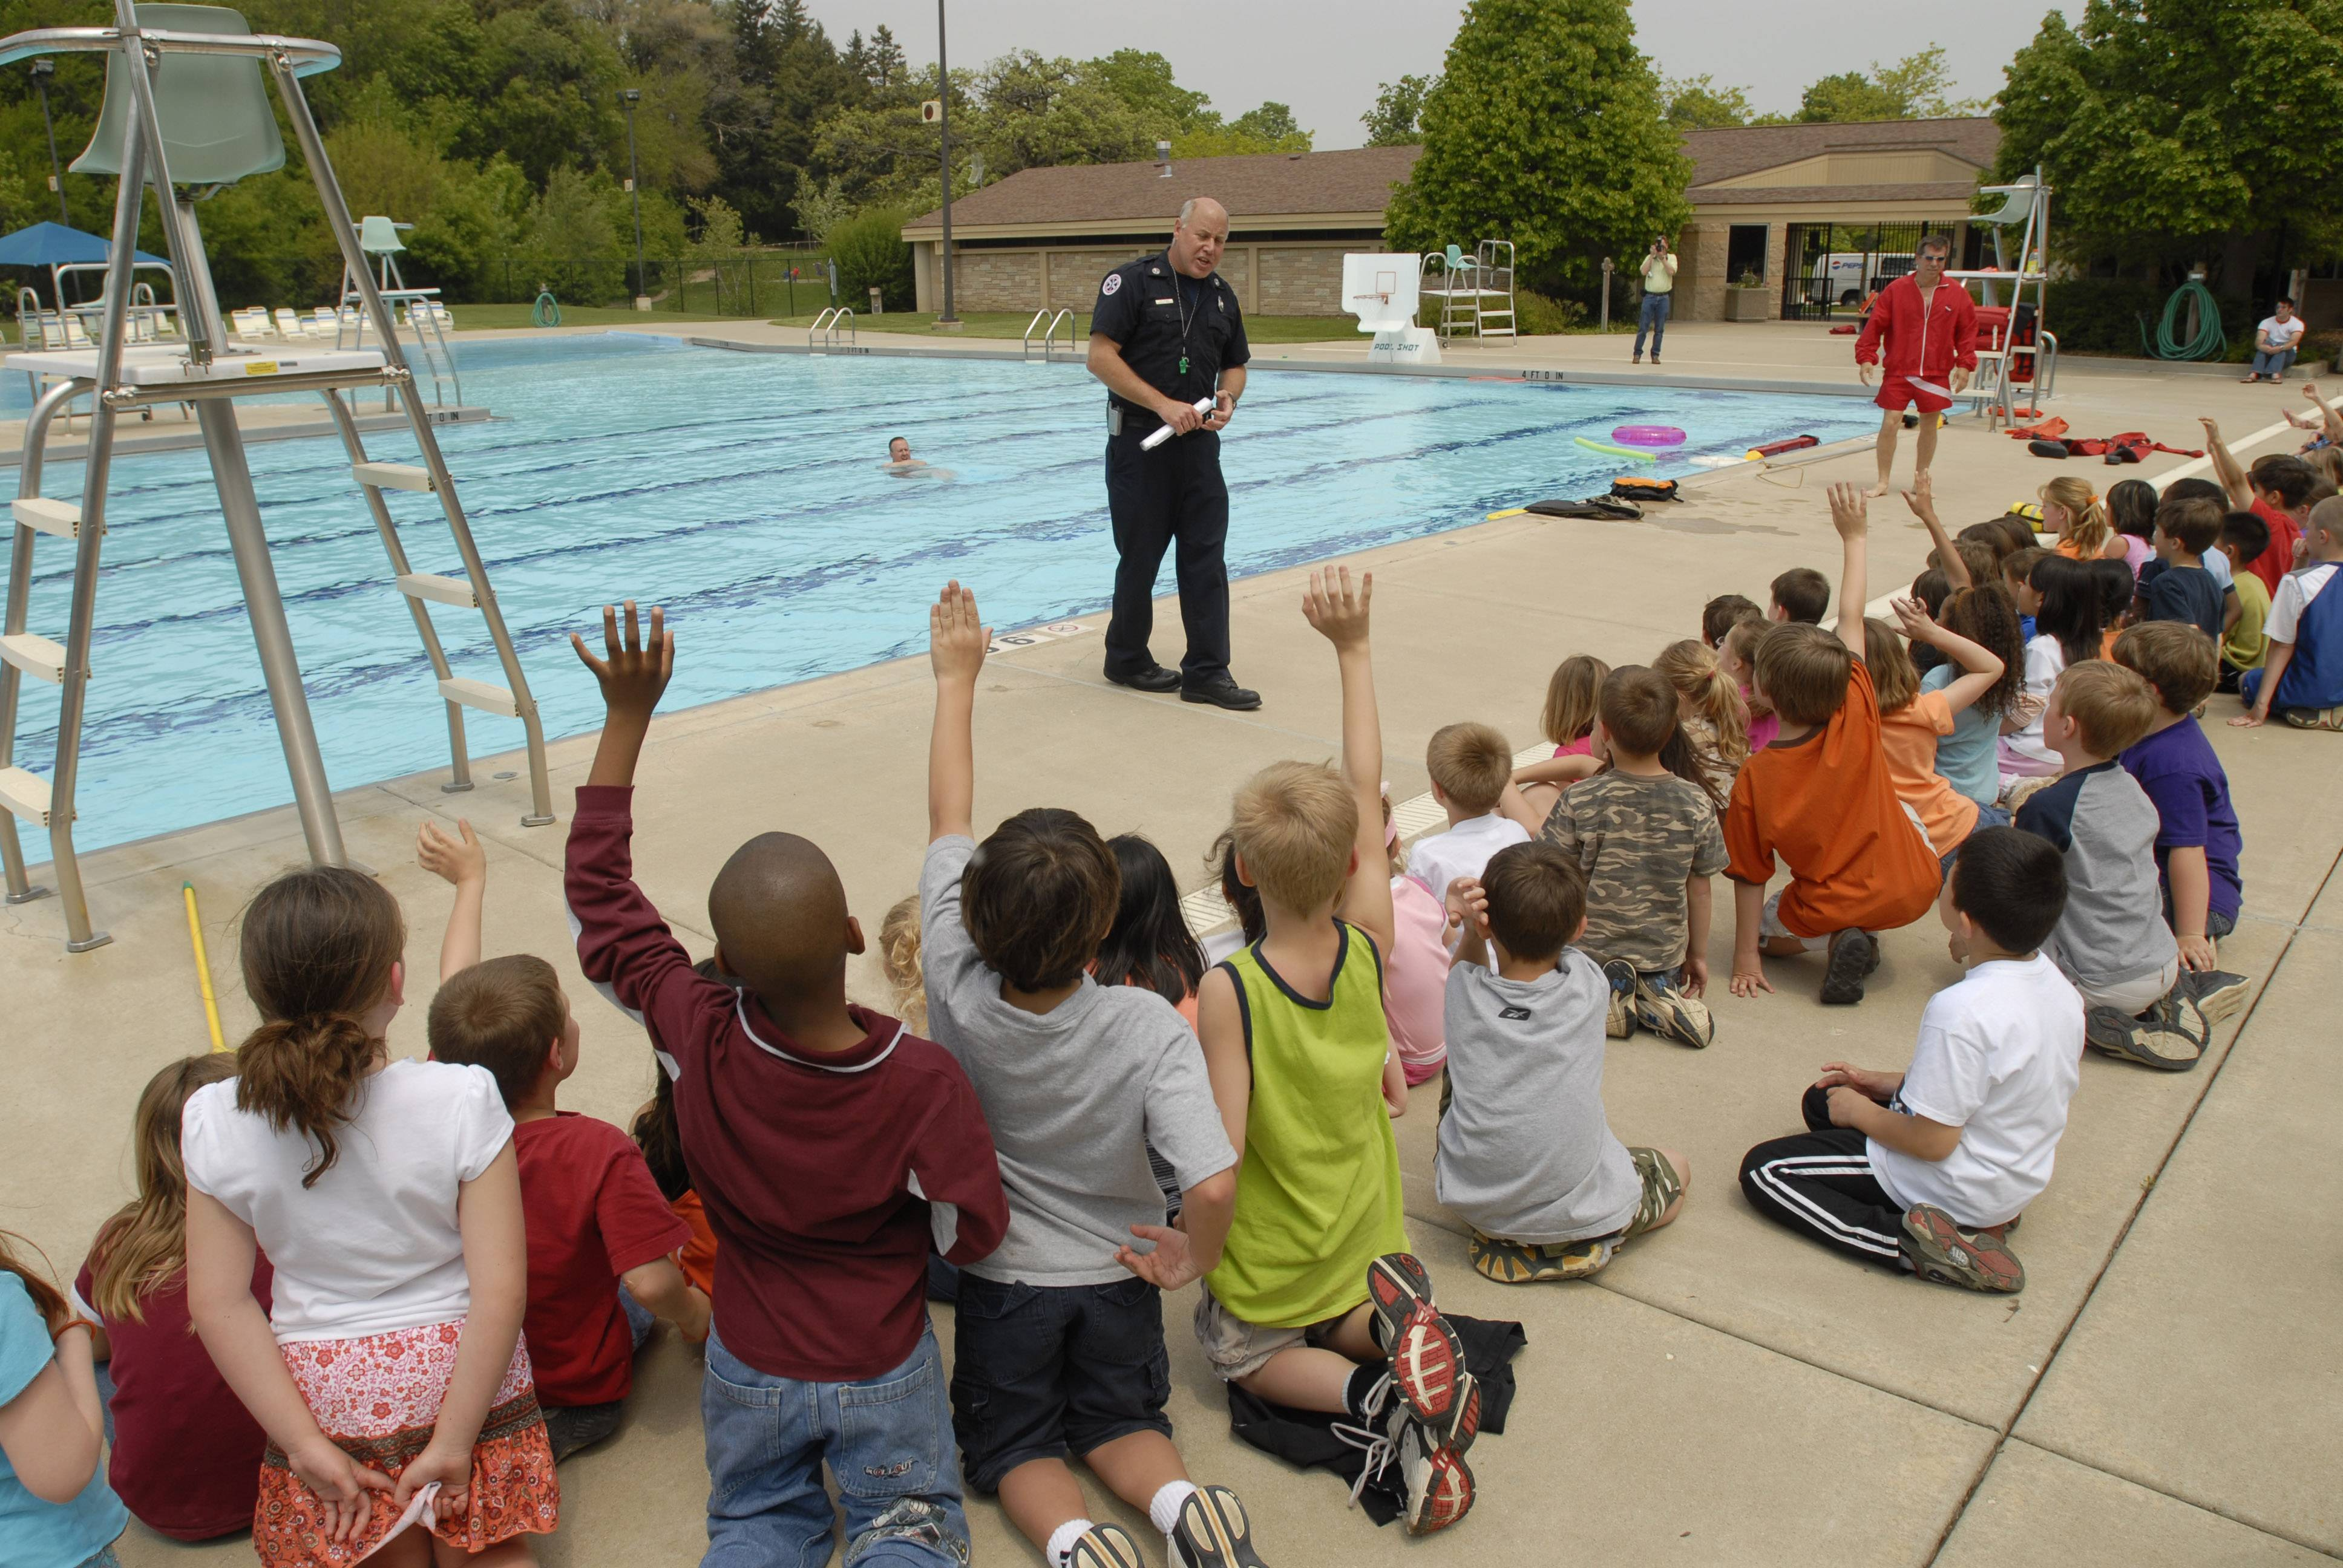 Students get a lesson in pool safety from a Libertyville firefighter/paramedic. Drowning is the leading cause of injury-related death among 1- to 4-year-olds.